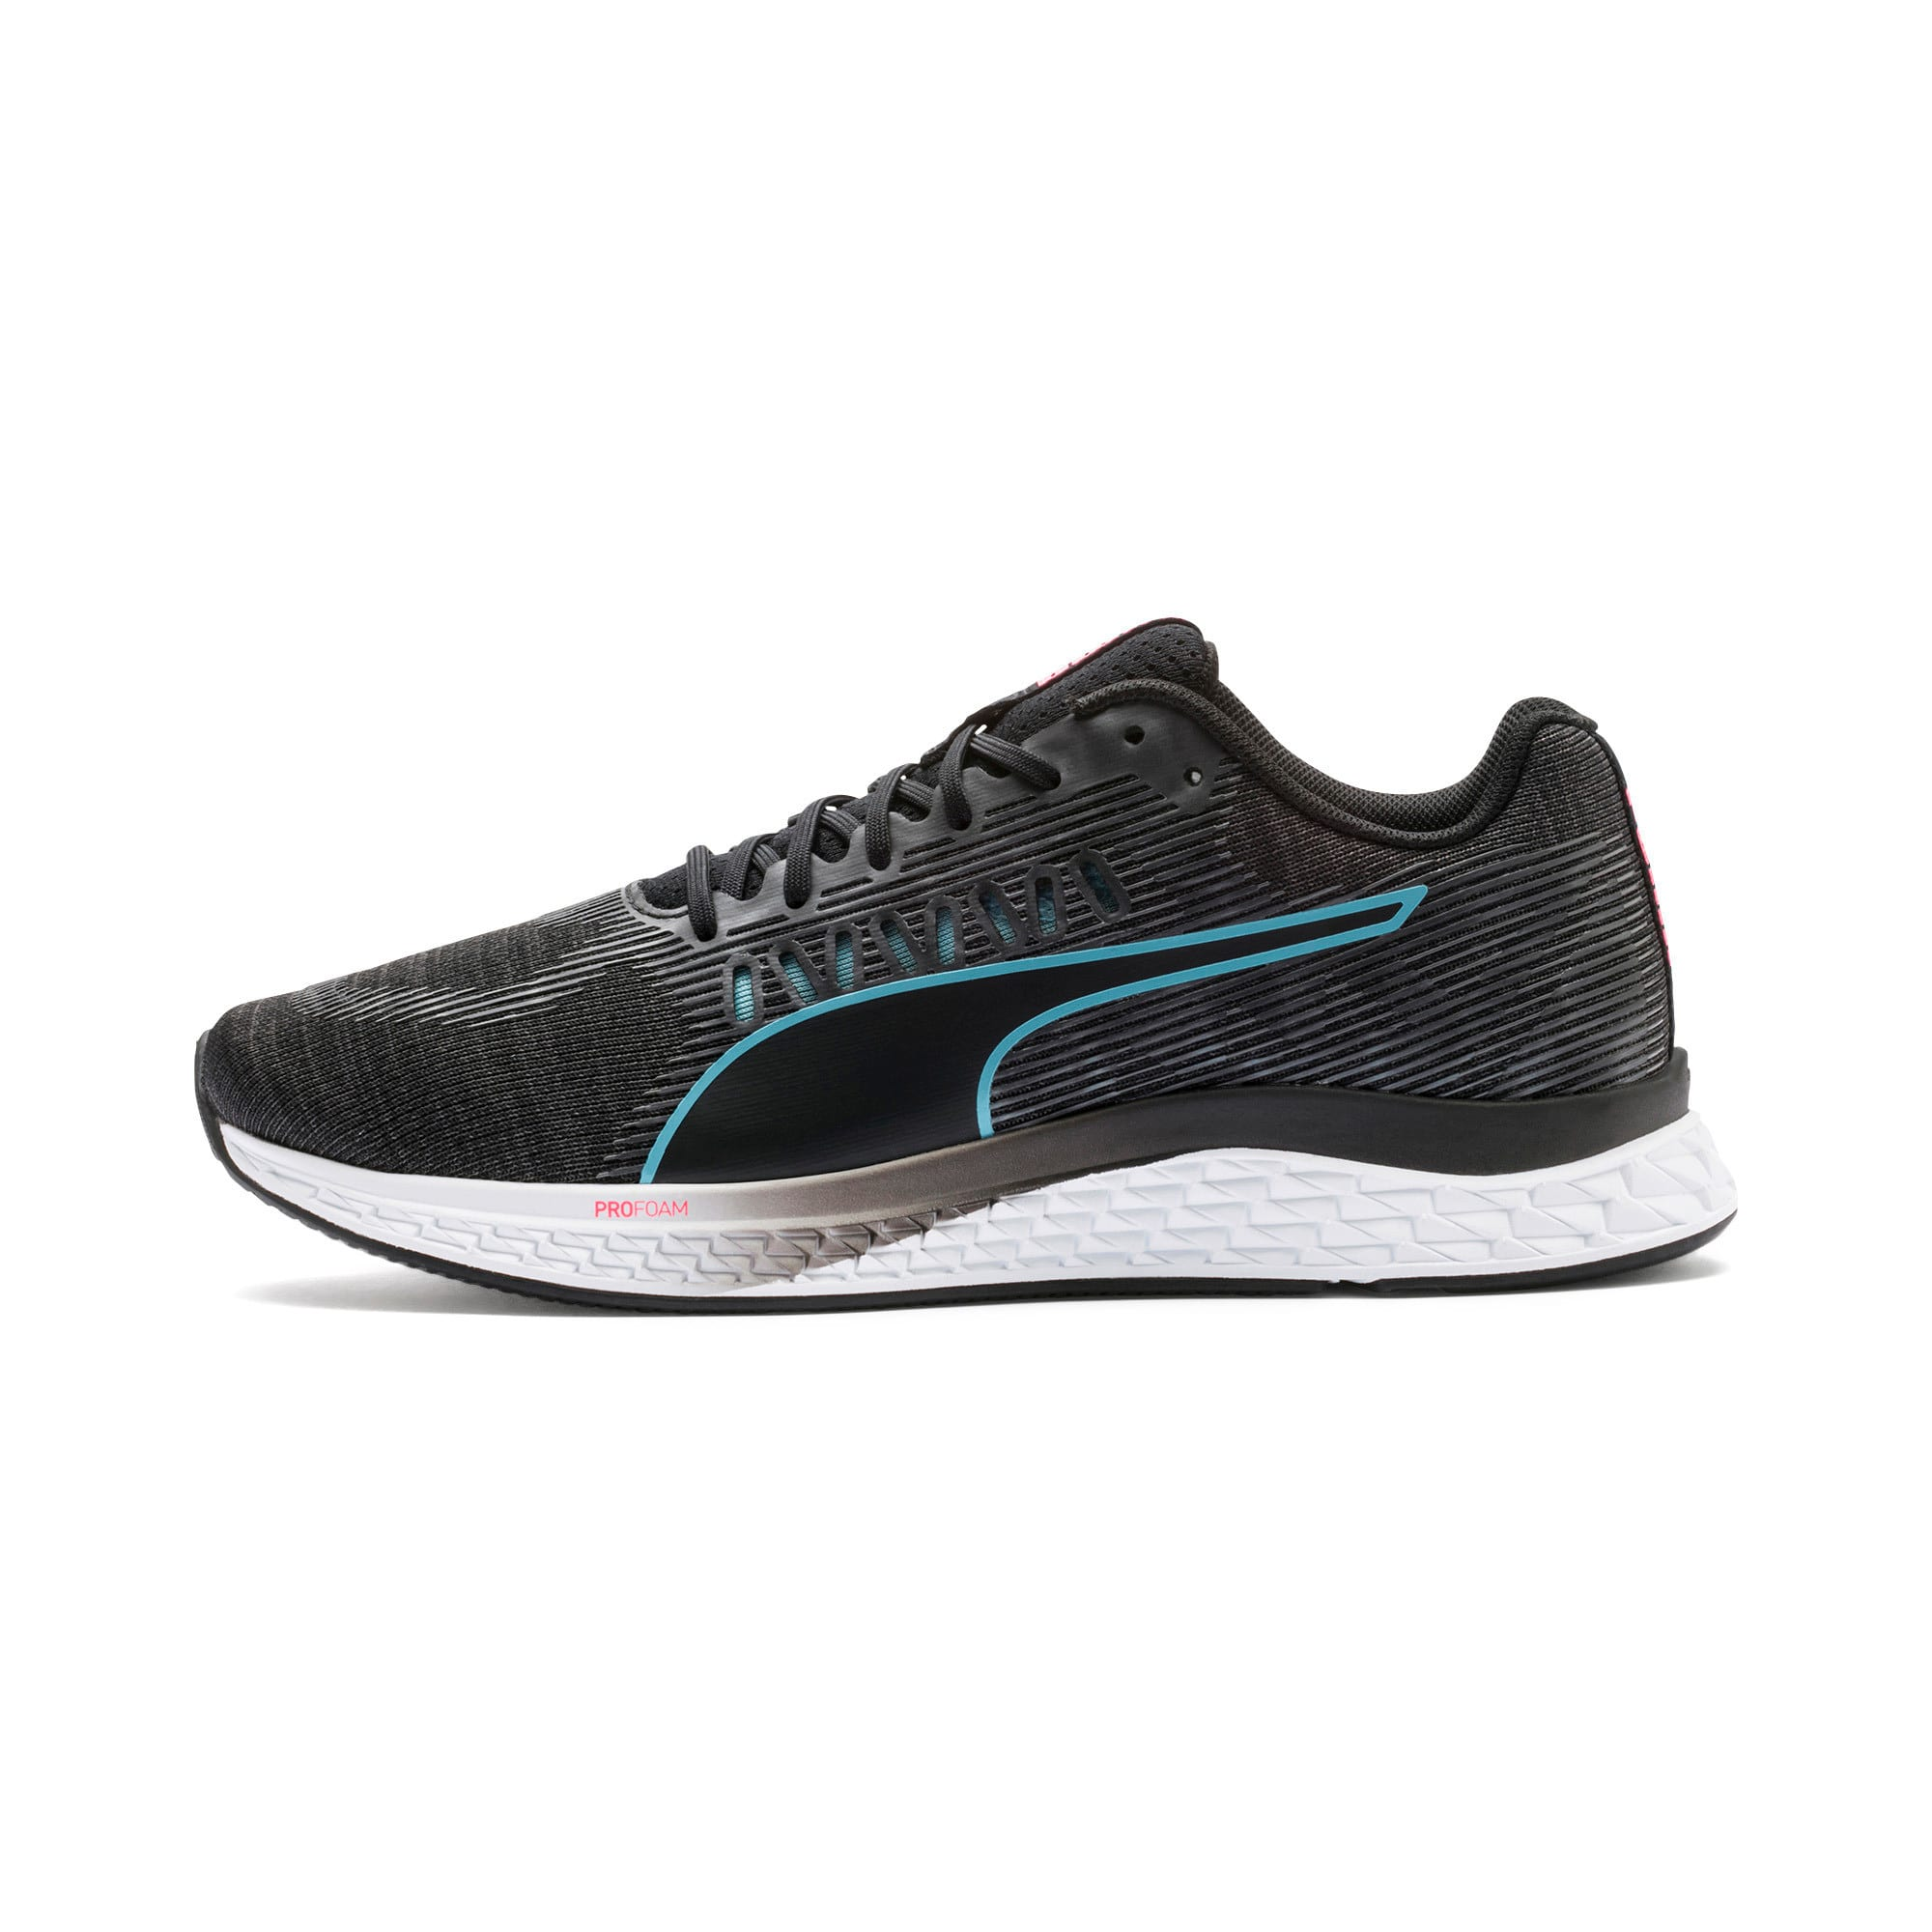 Thumbnail 1 of Speed Sutamina Women's Running Shoes, Black-Milky Blue-Pink Alert, medium